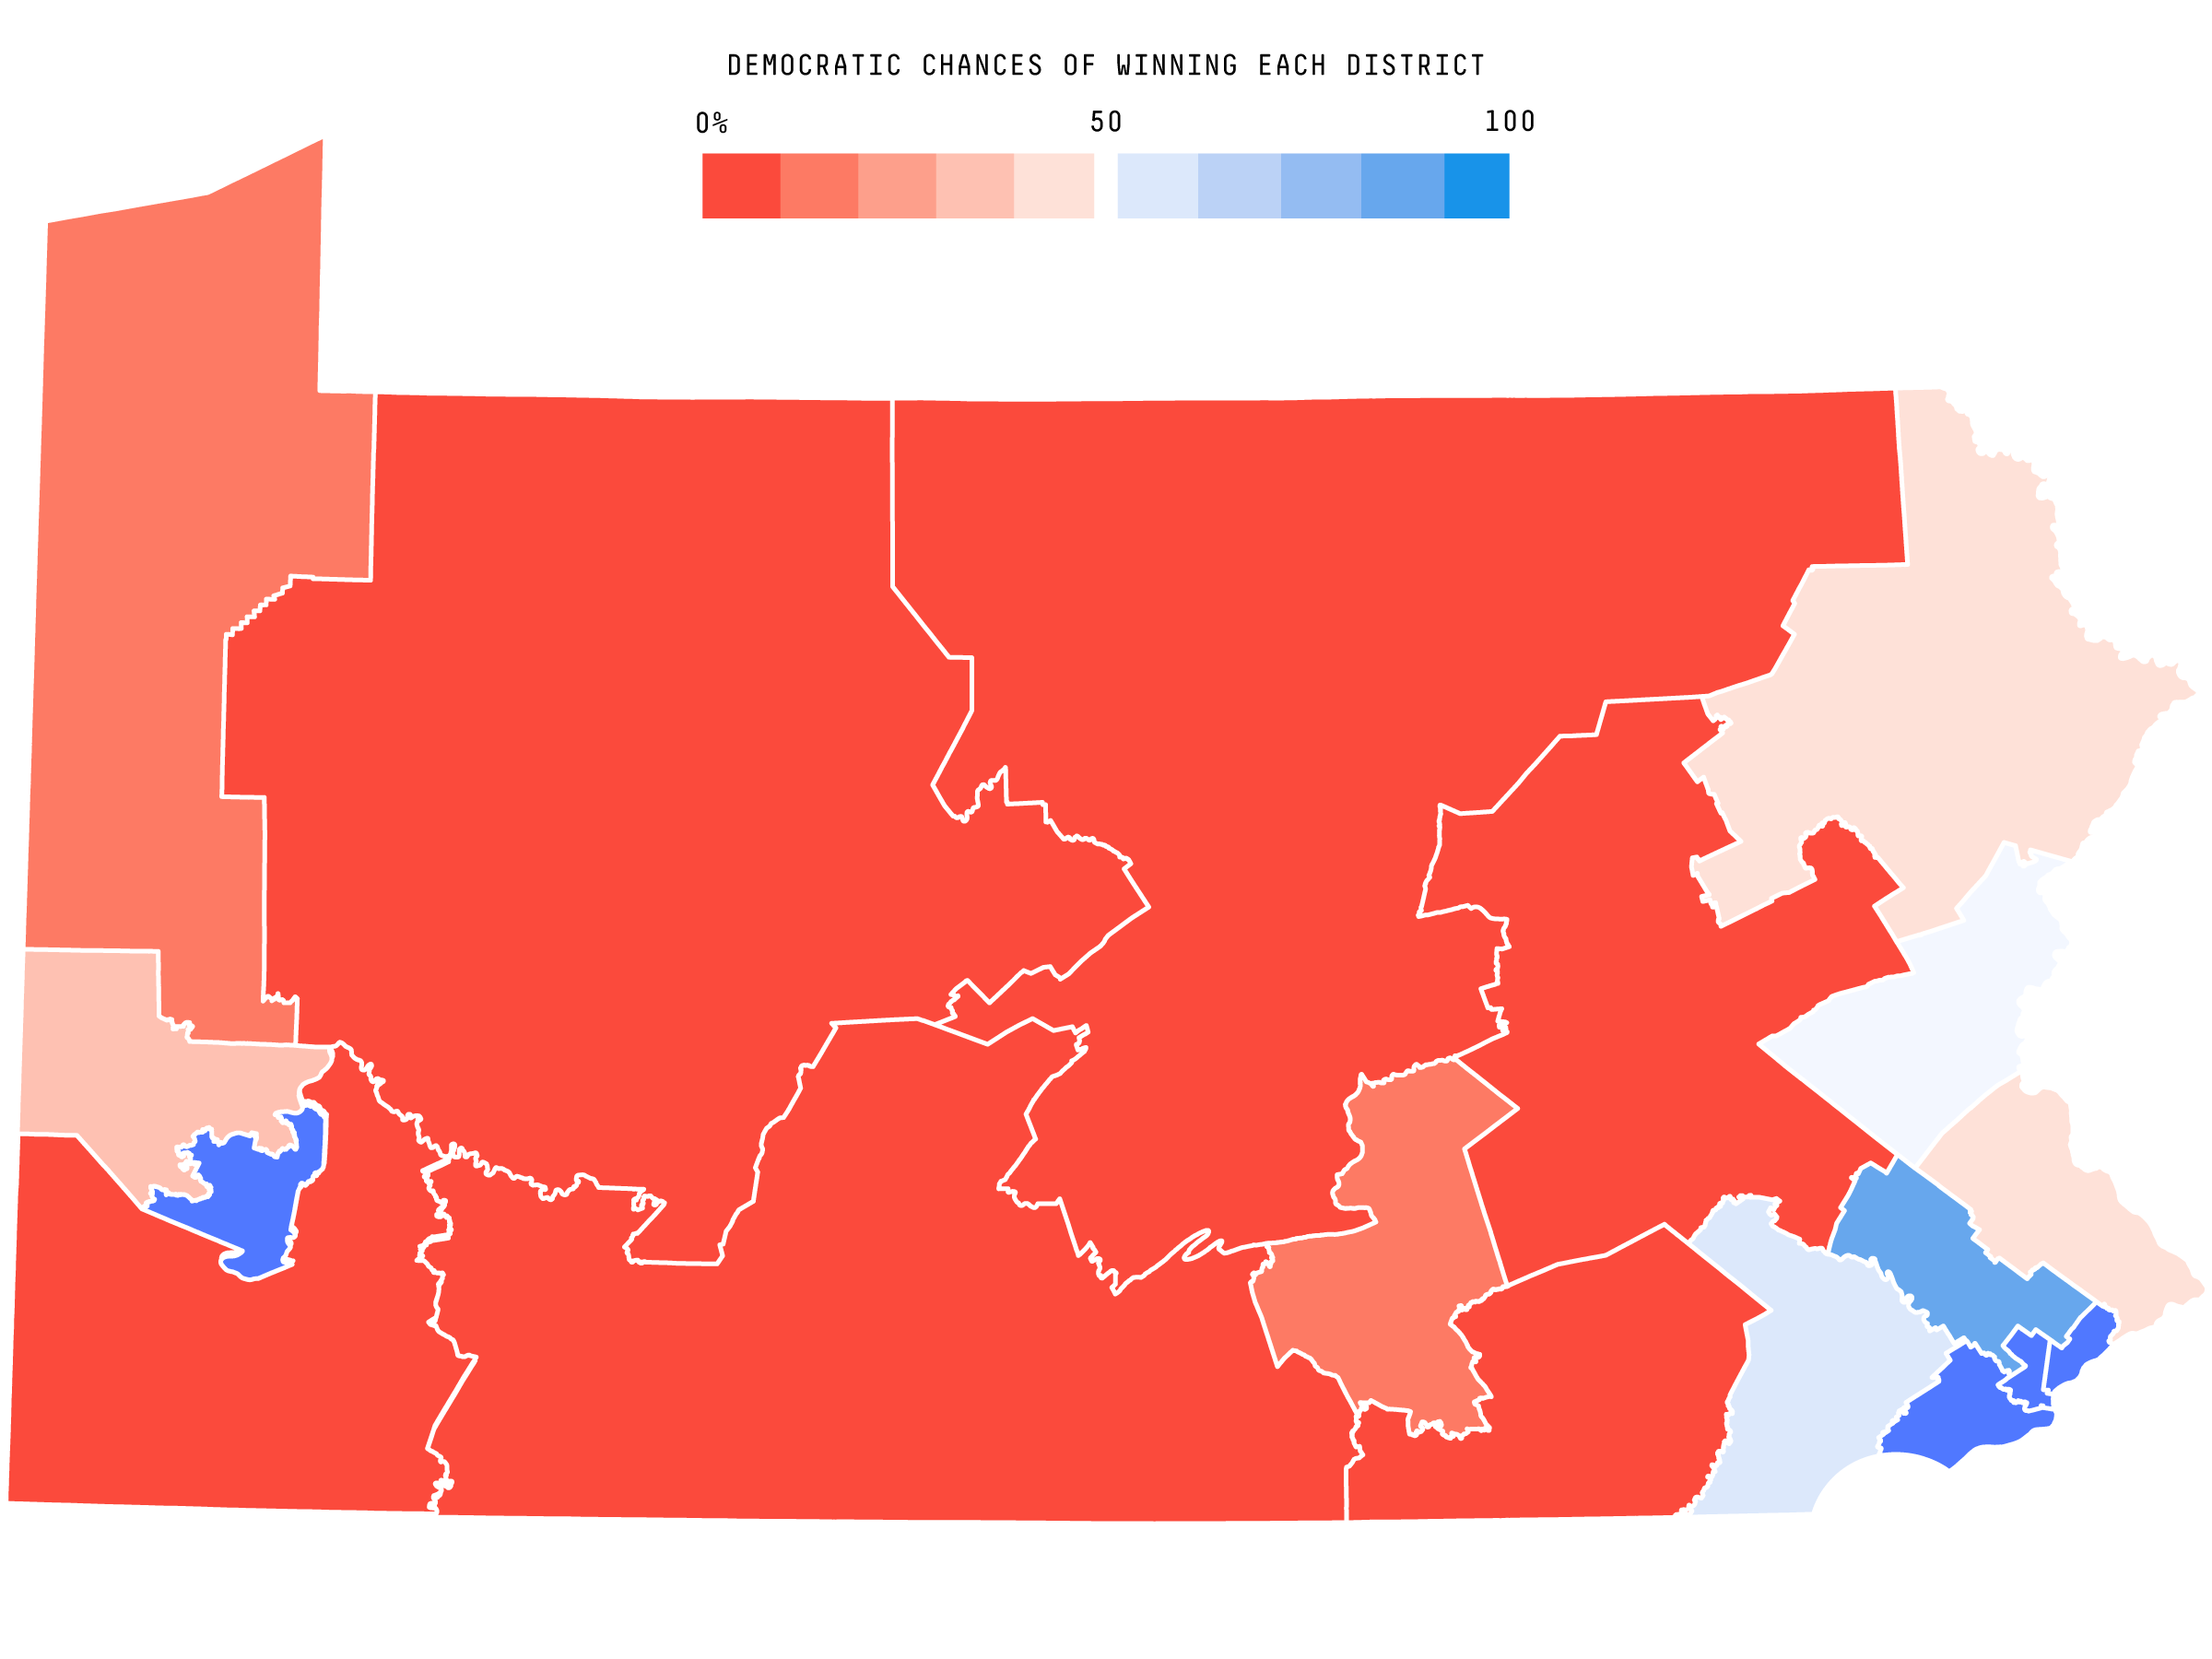 pennsylvanias new map helps democrats but its not a democratic gerrymander fivethirtyeight